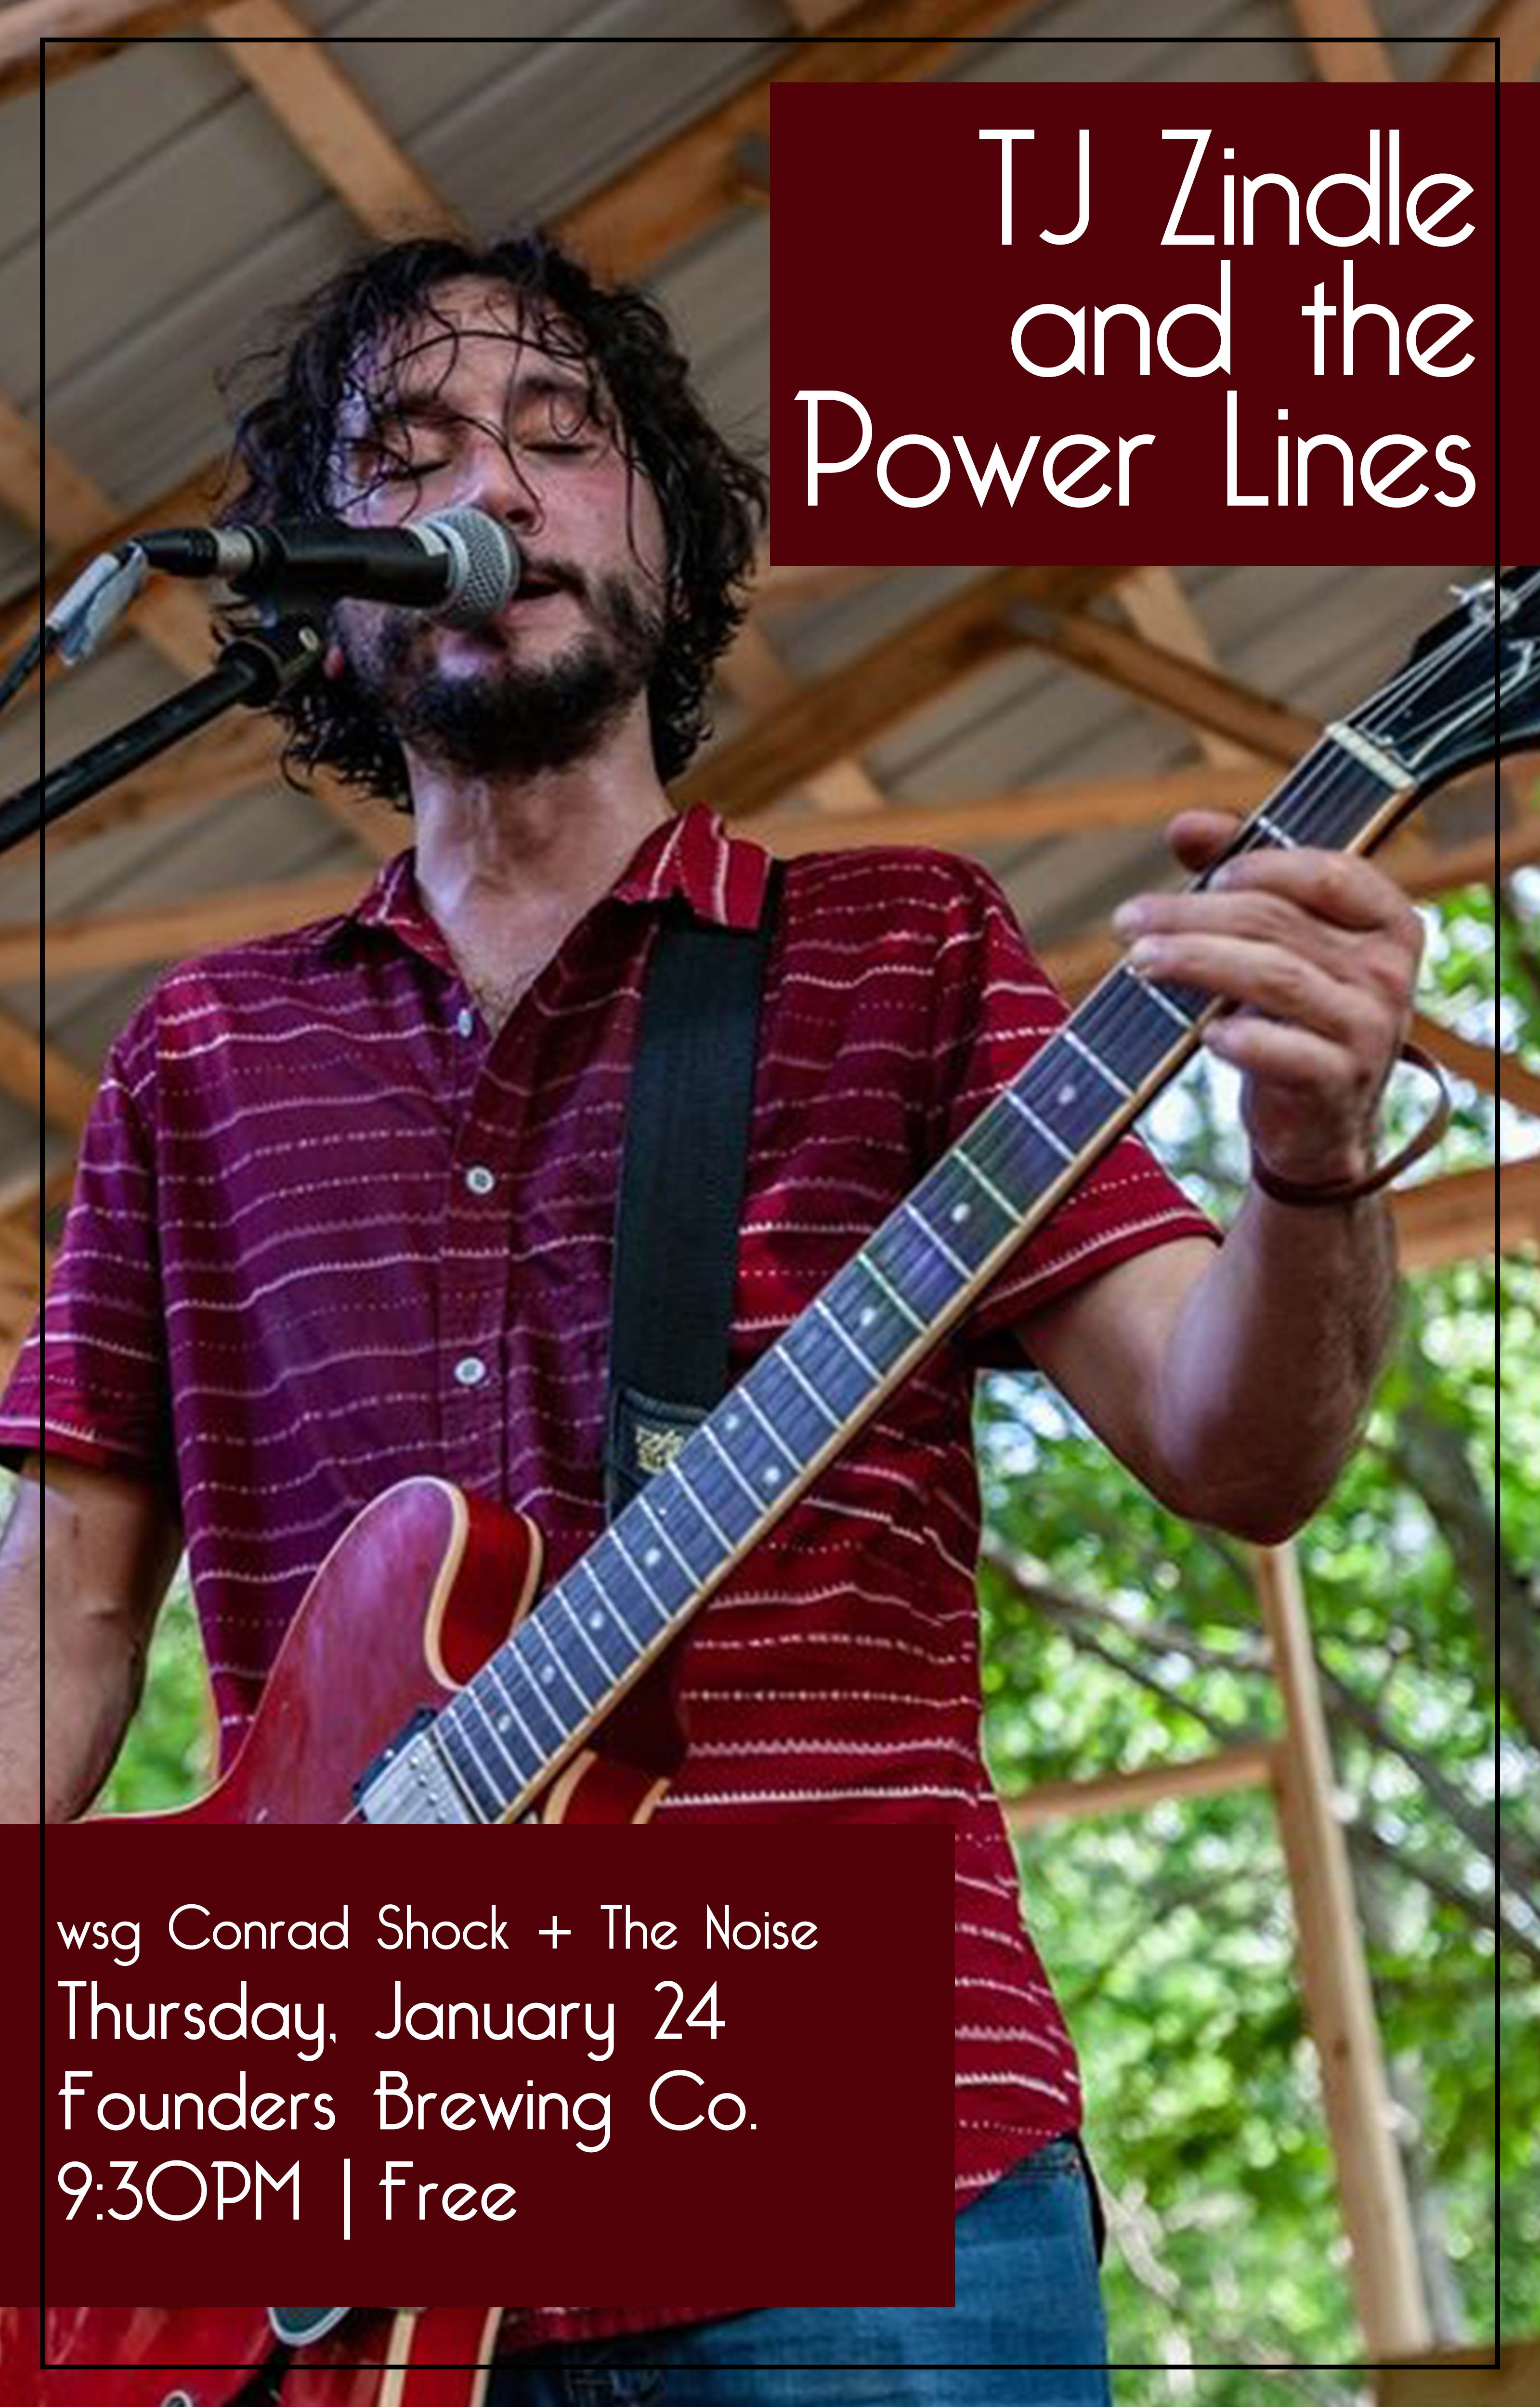 Tj Zindle and the Power Lines event poster